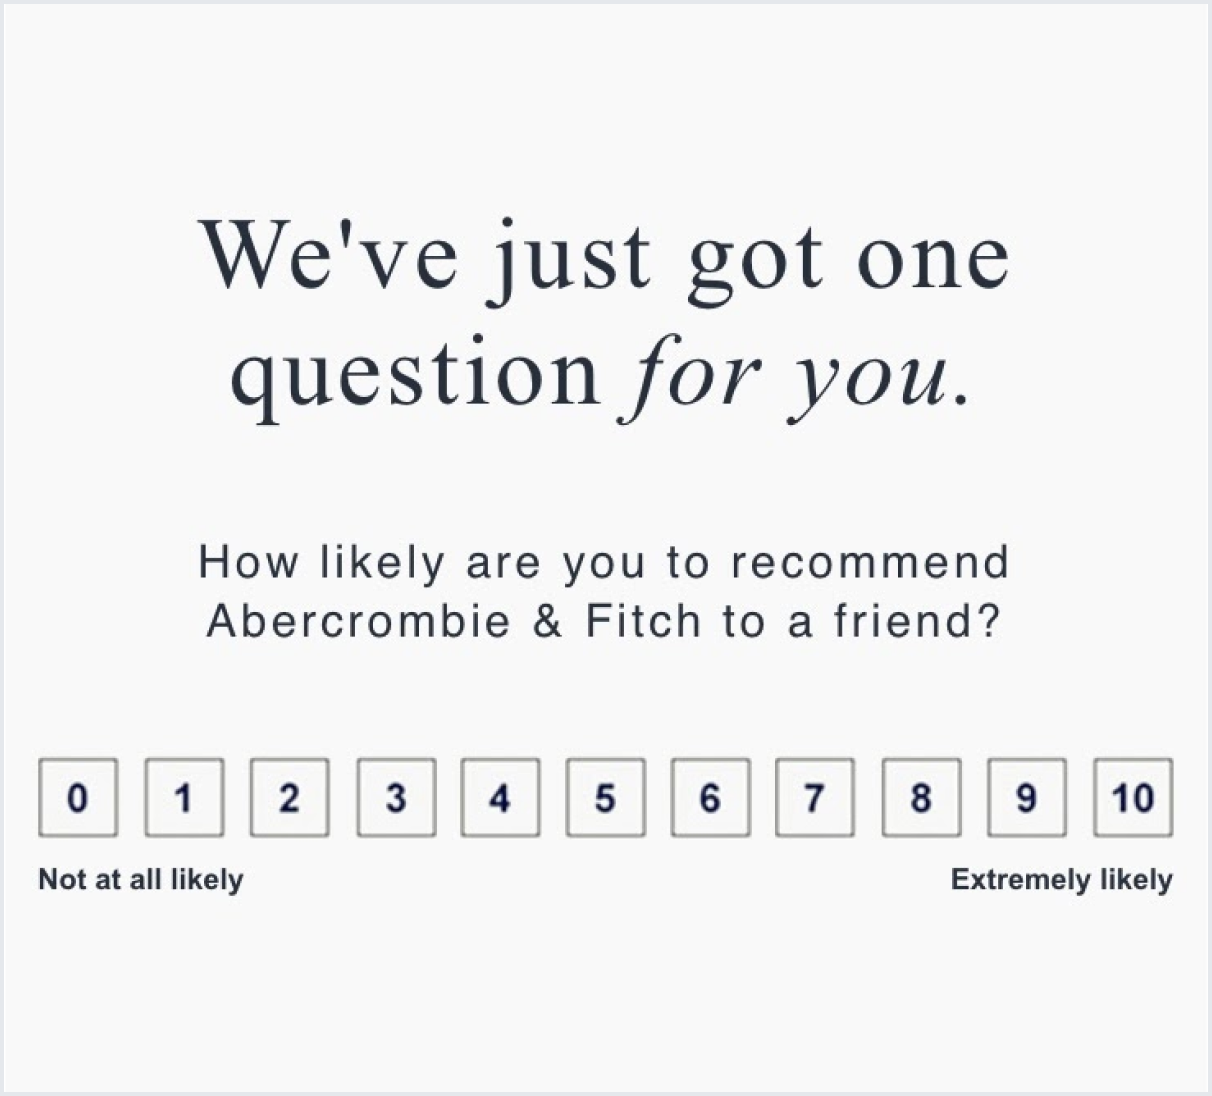 NPS survey example at Abercrombie & Fitch